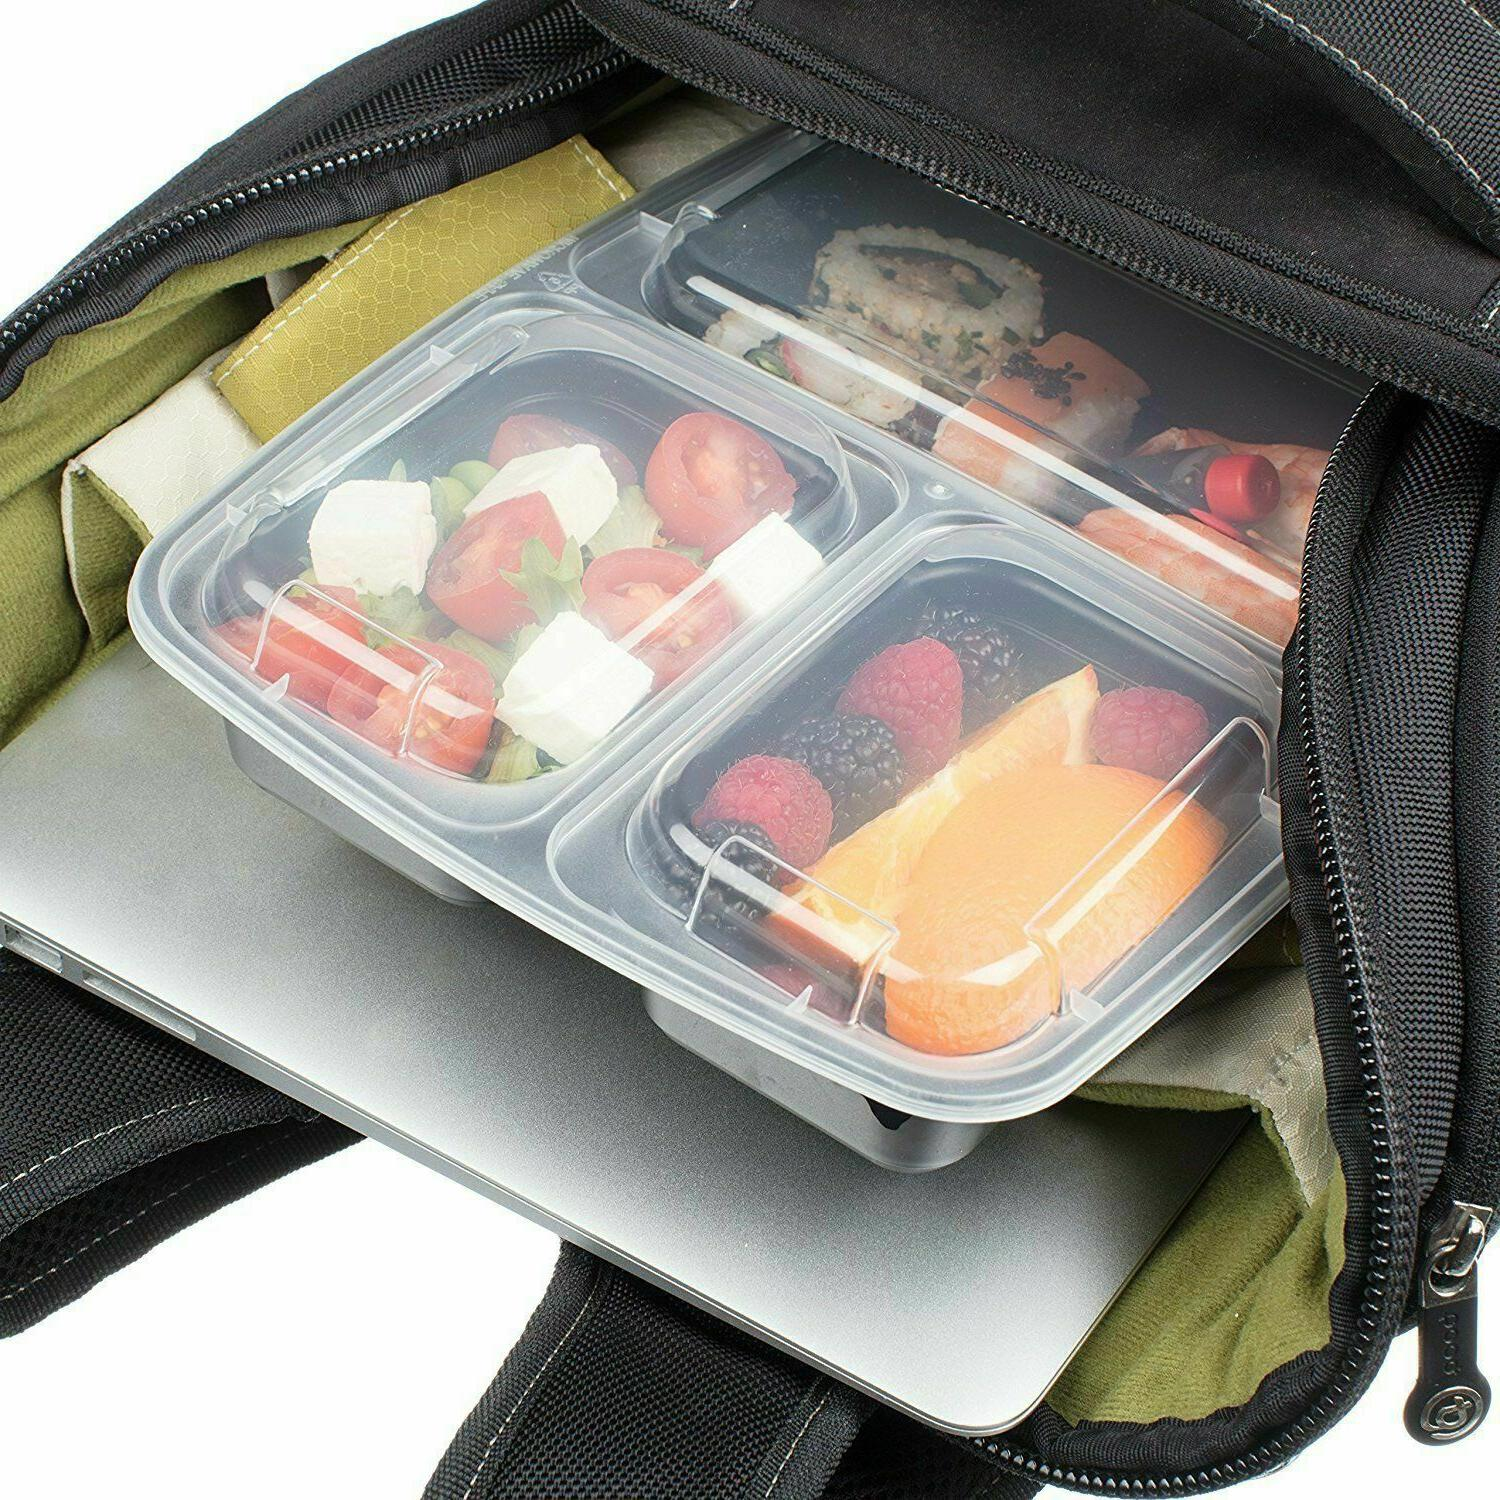 20 Meal Containers Food Storage 3 Compartment Microwave Safe